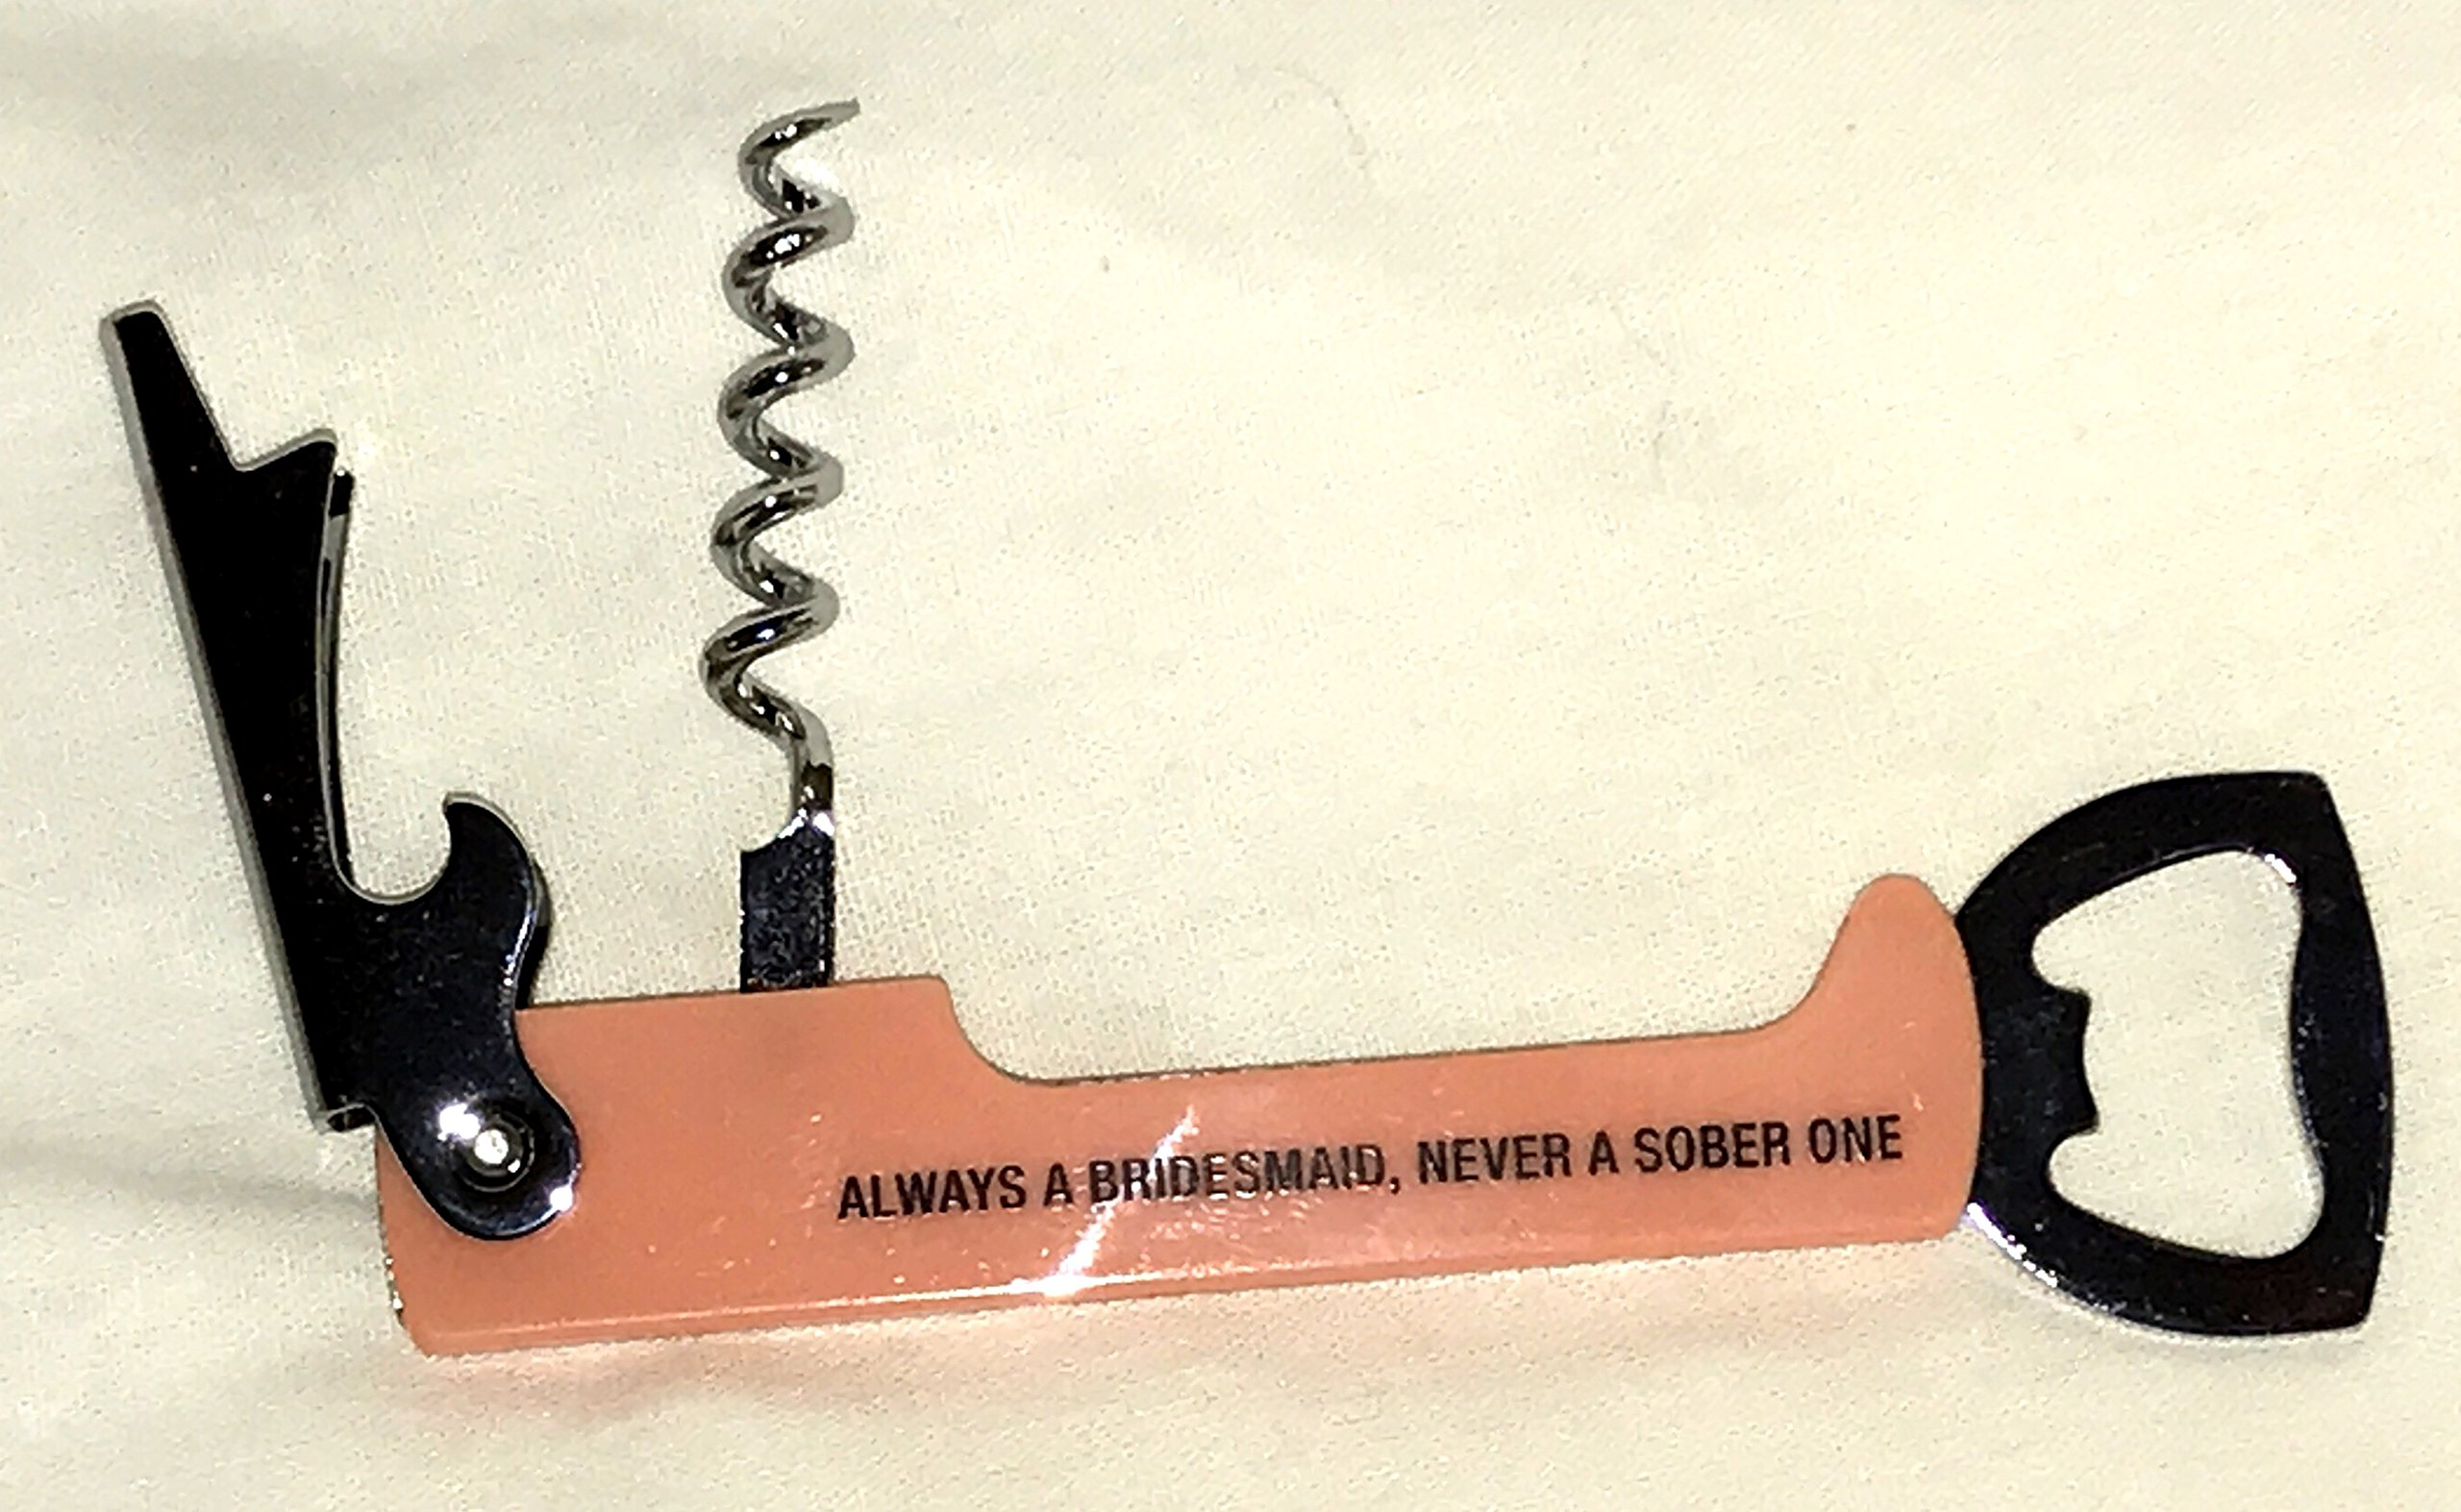 Always A Bridesmaid, Never a Sober One - Bridesmaid Gift Bottle Opener & Wine Corkscrew (5'' x 1'' x 0.5'') by About Face Designs